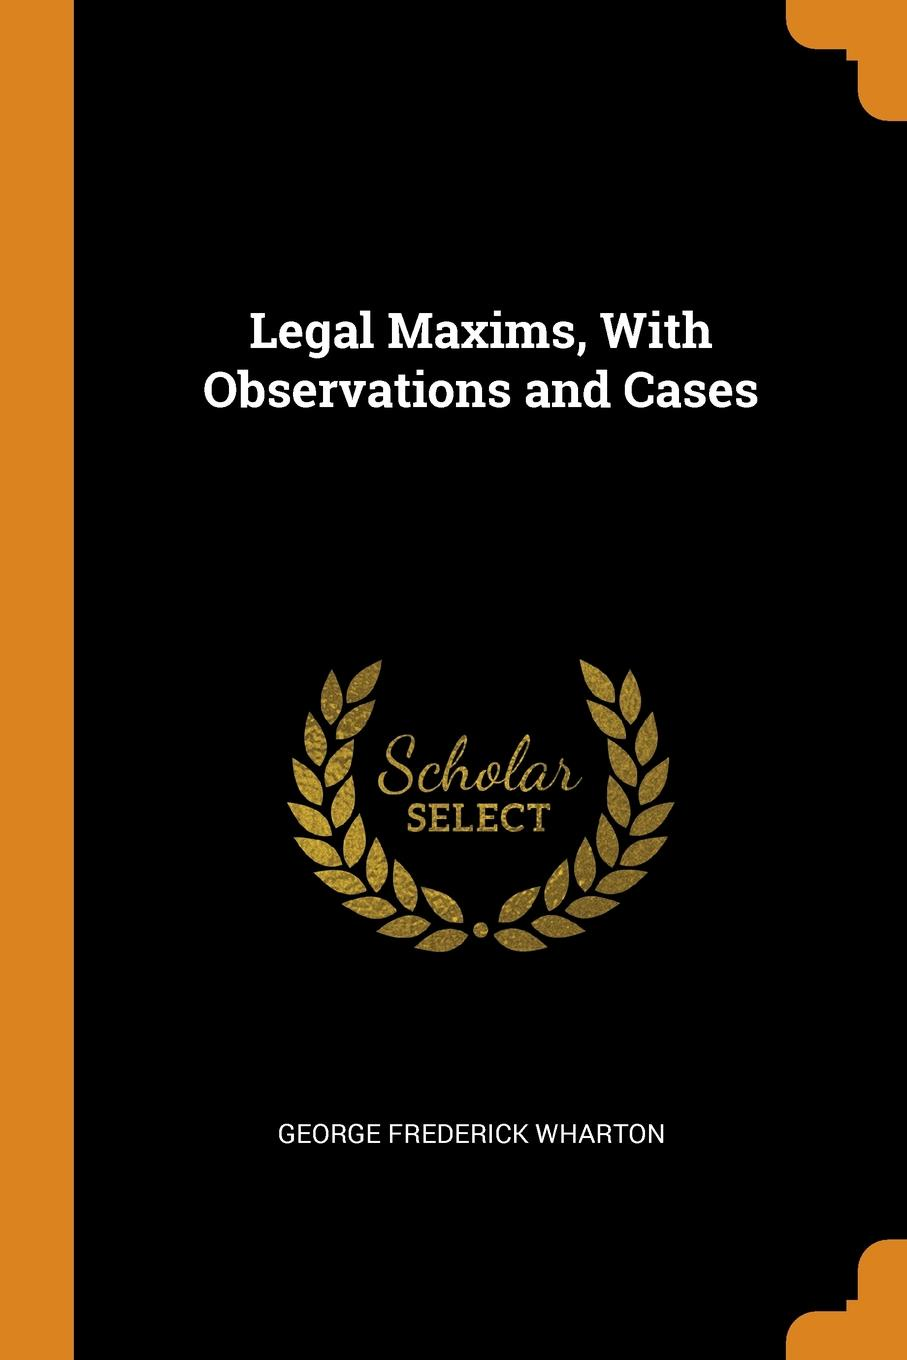 Legal Maxims, With Observations and Cases. George Frederick Wharton